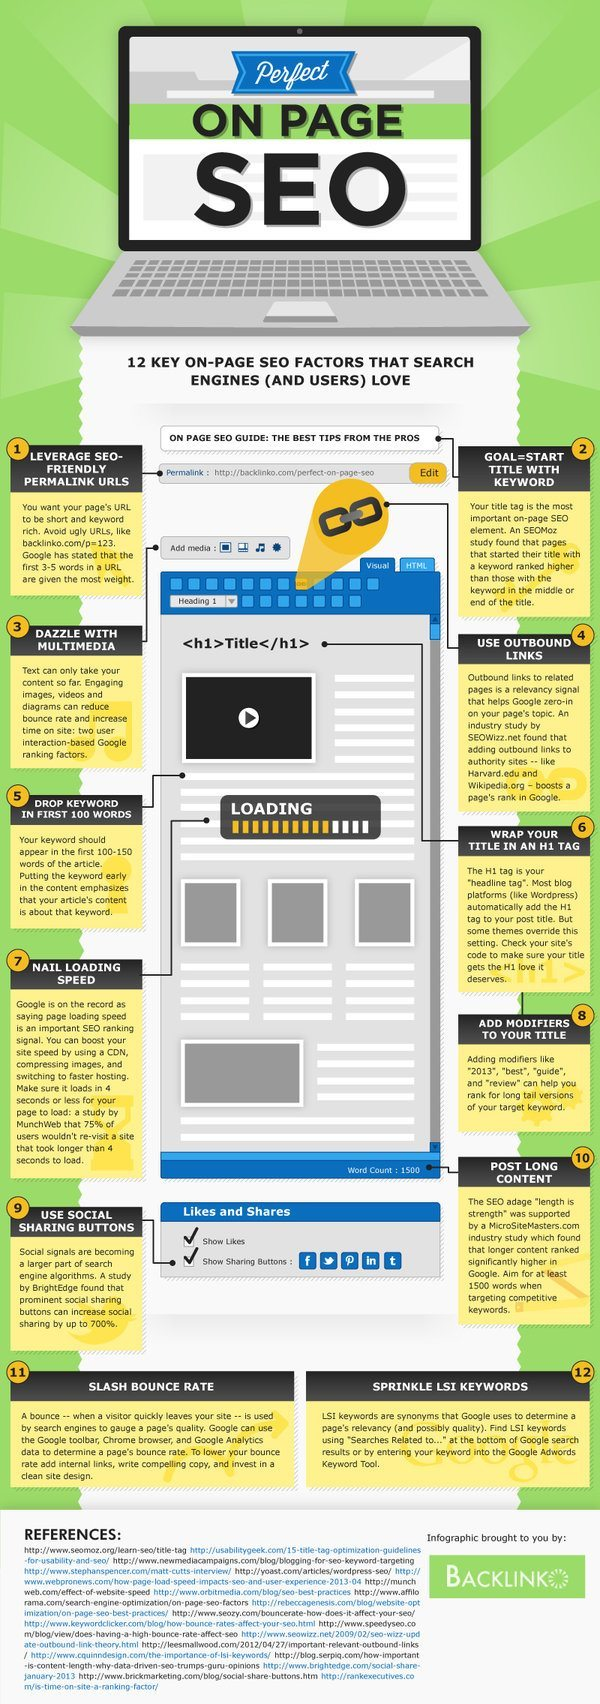 Backlinko on page seo infographic